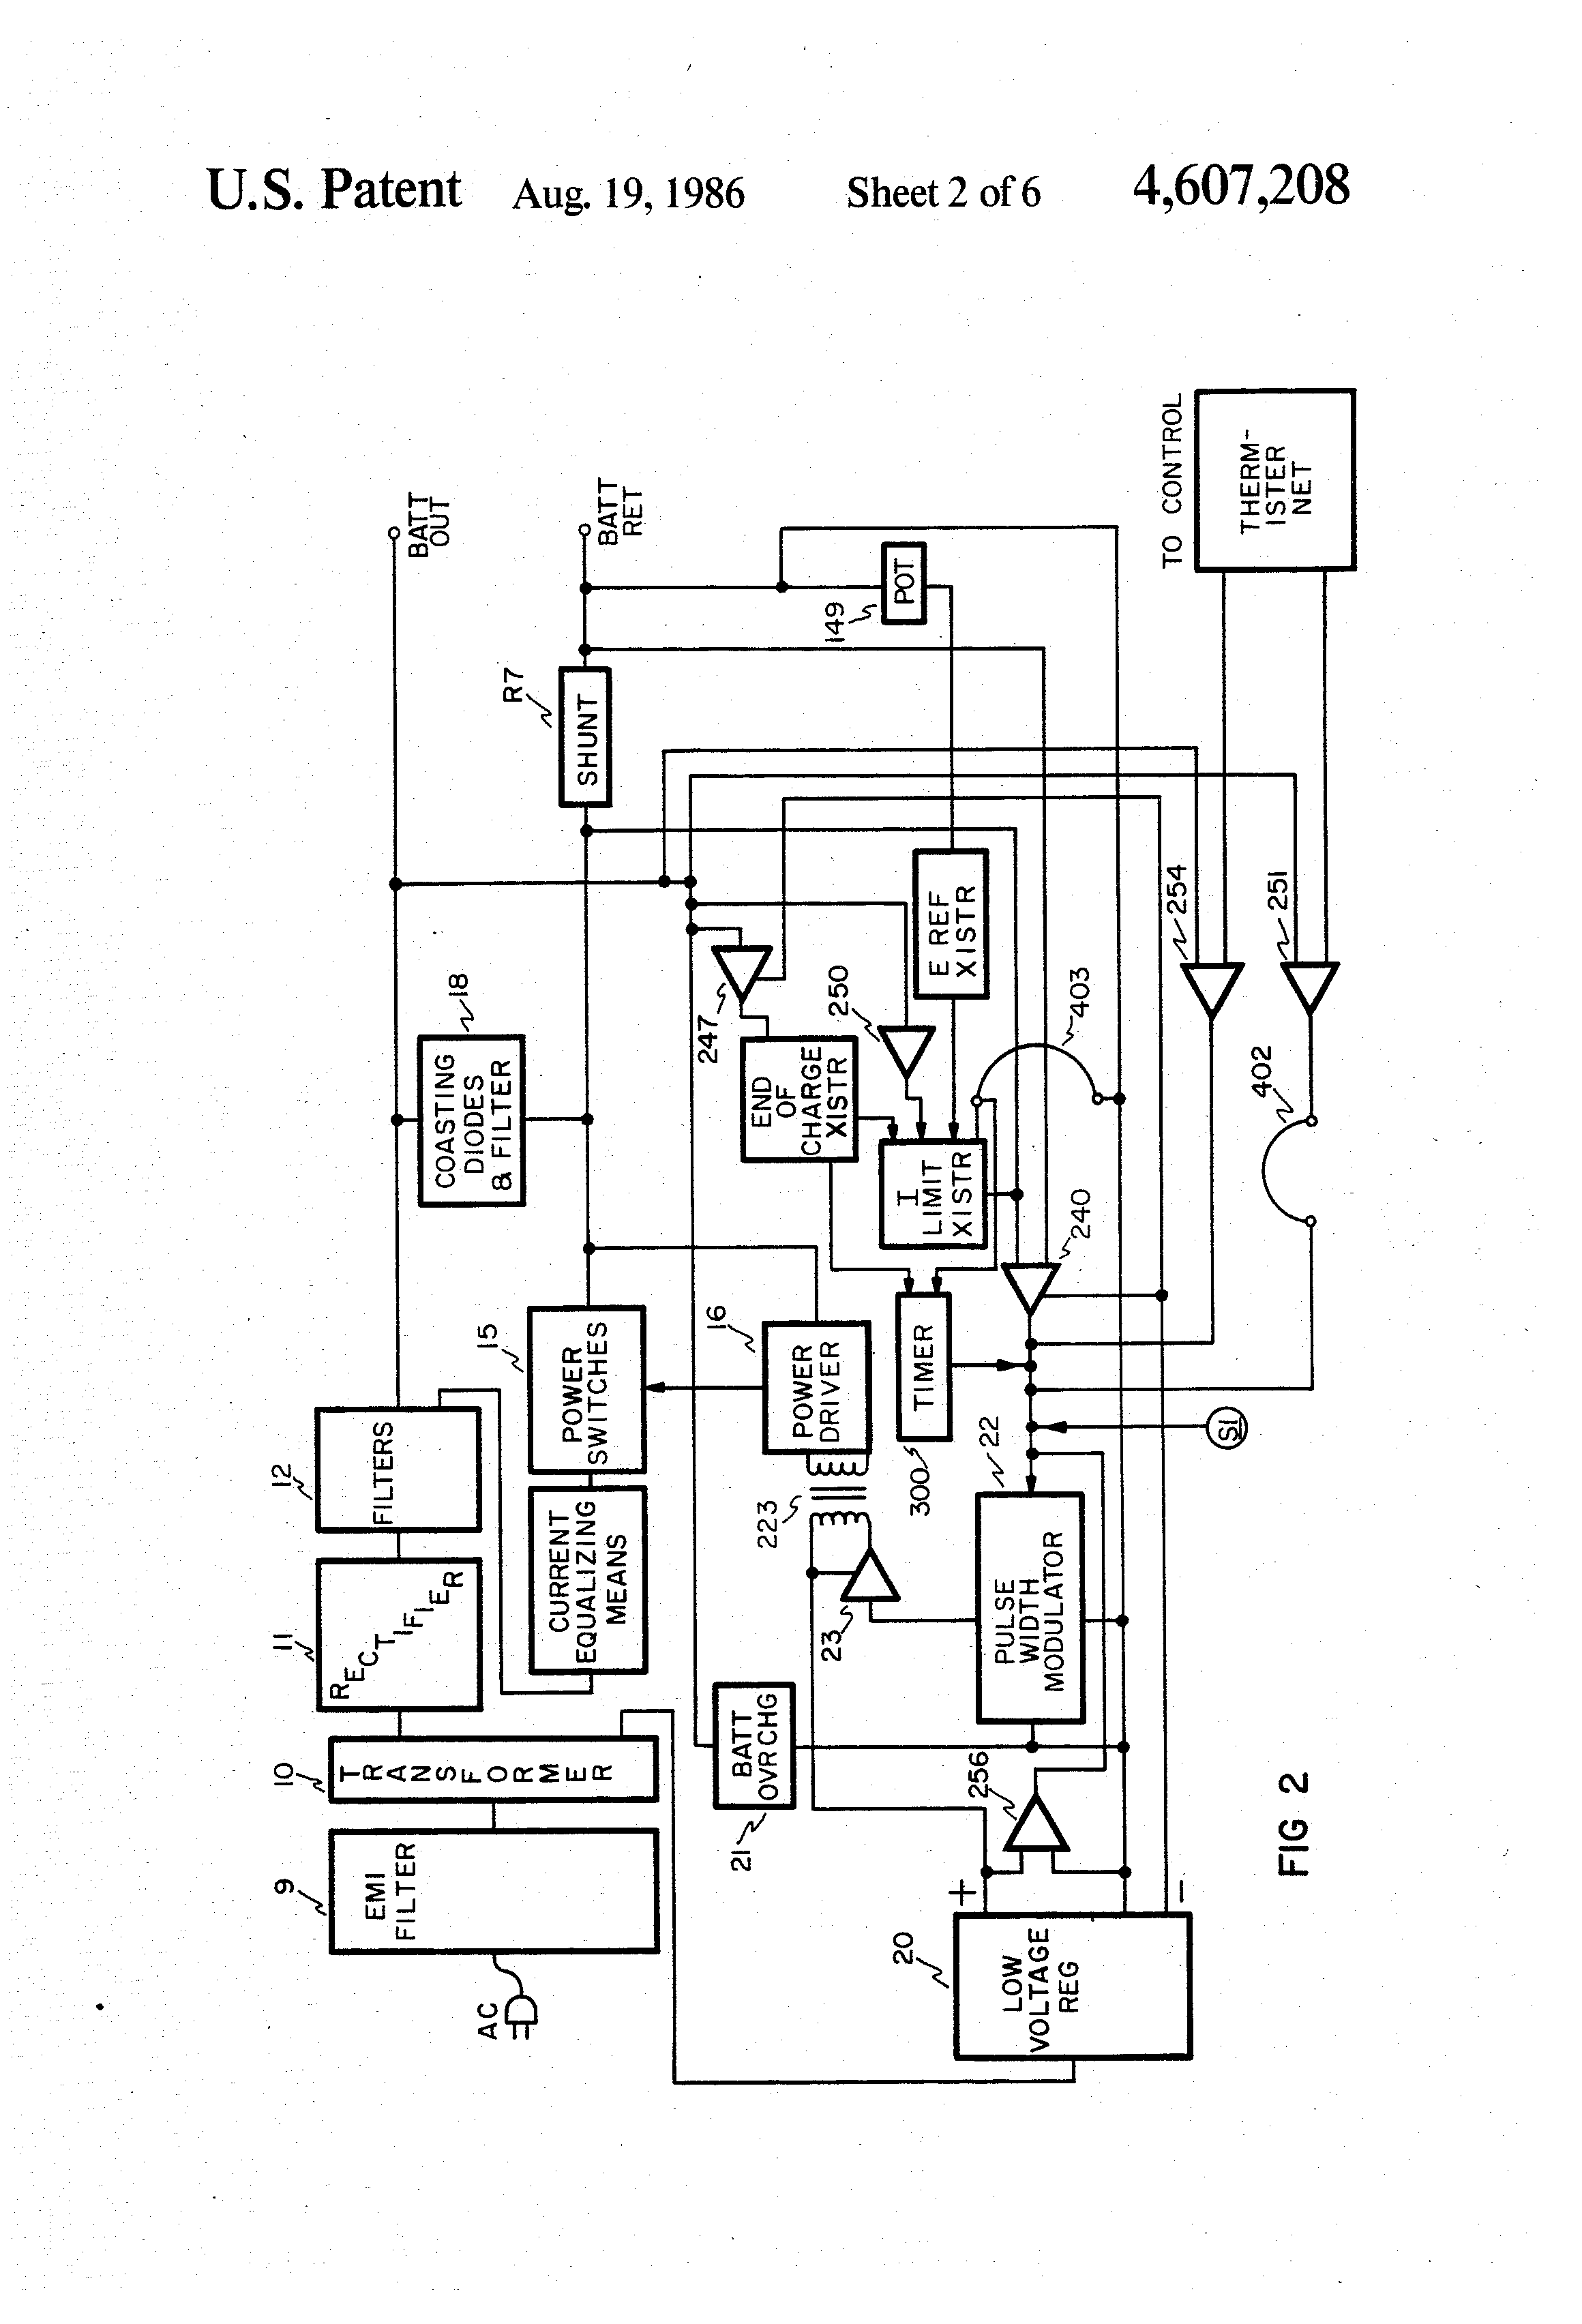 US4607208 2 wiring diagram for schumacher battery charger circuit and dayton 12v battery charger wiring diagram at gsmx.co